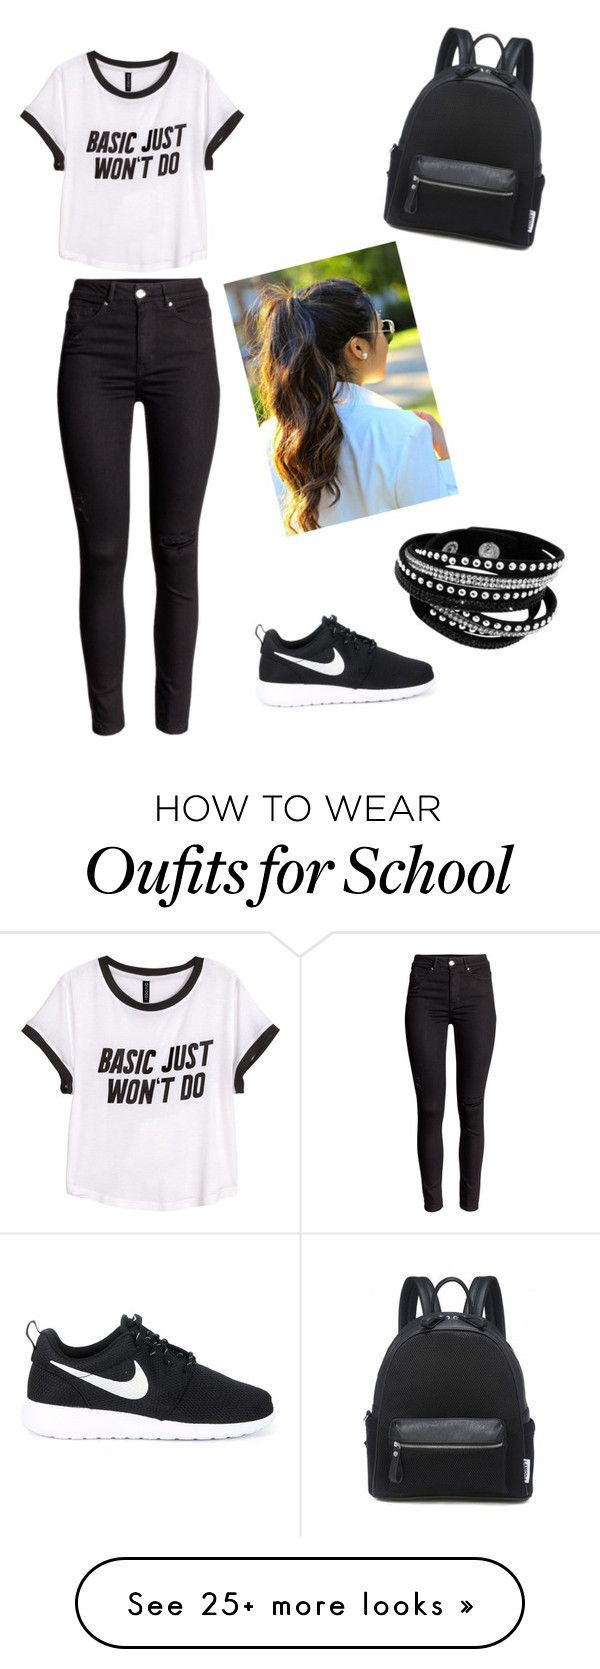 School look by paulinain on Polyvore featuring HM and NIKE Clothing, Shoes & Jewelry : Women : Shoes amzn.to/2kHQg0c